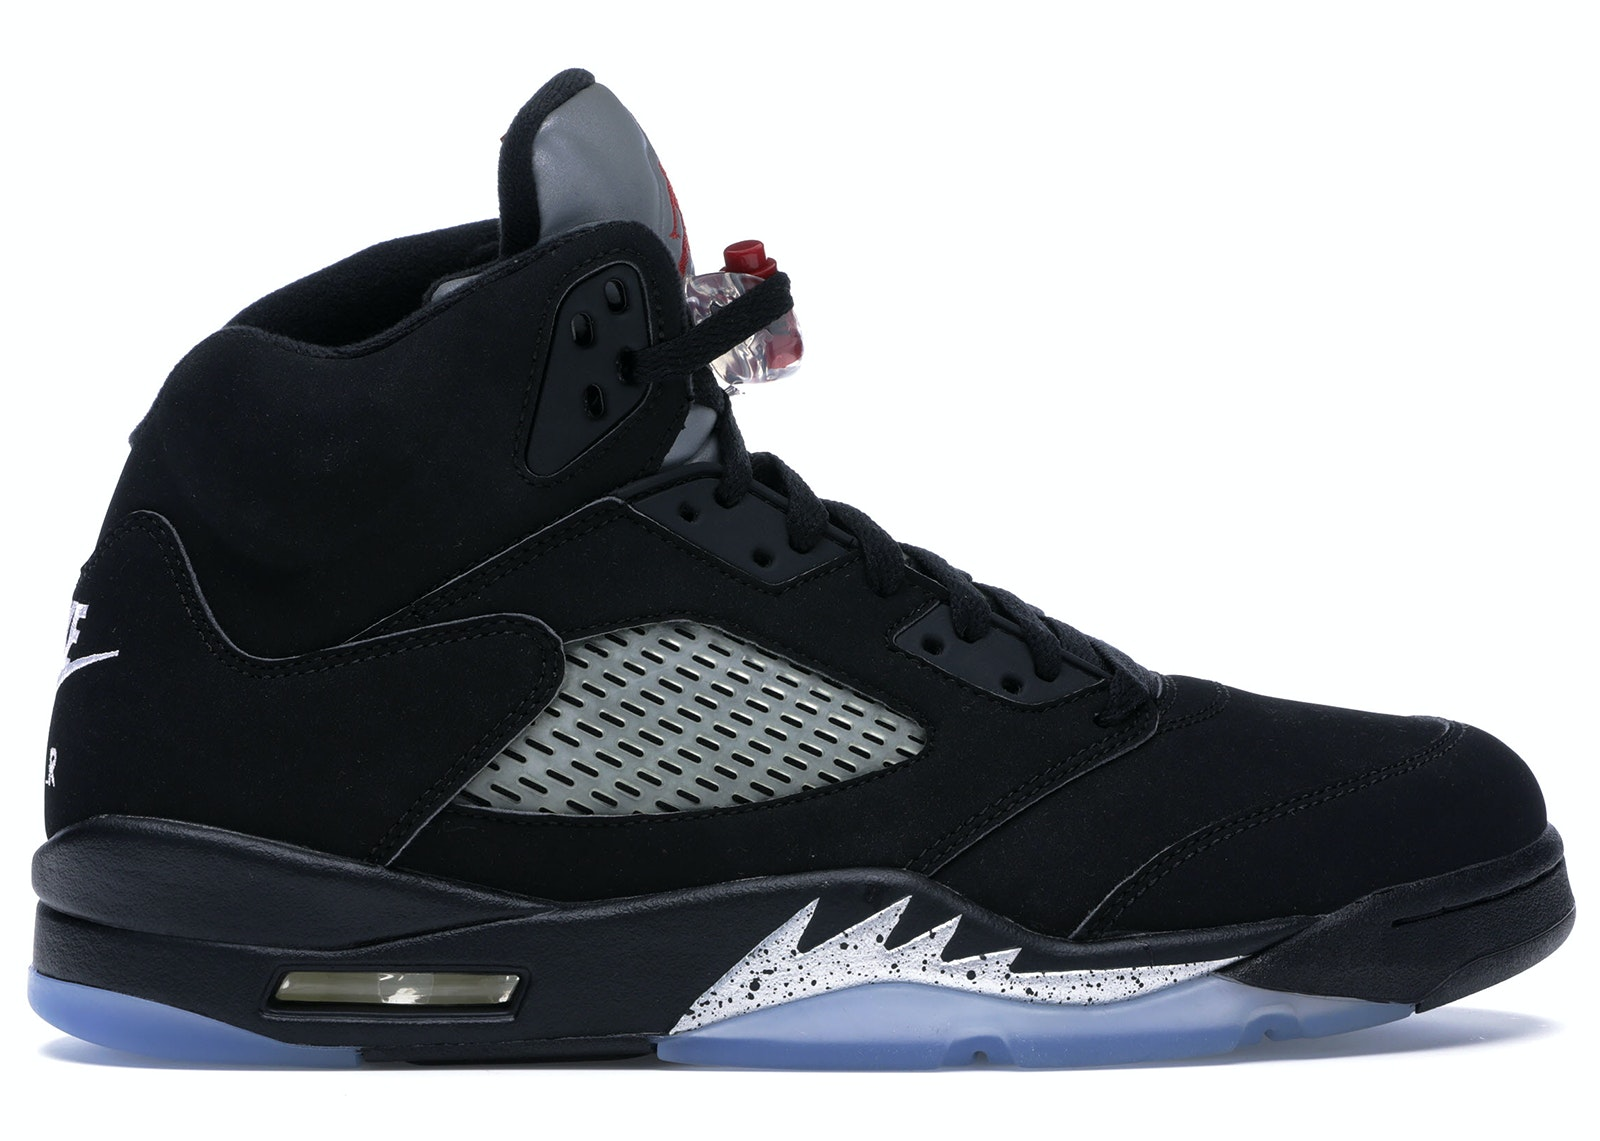 380beaf9dbc931 jordan 5s for sale high top Results for